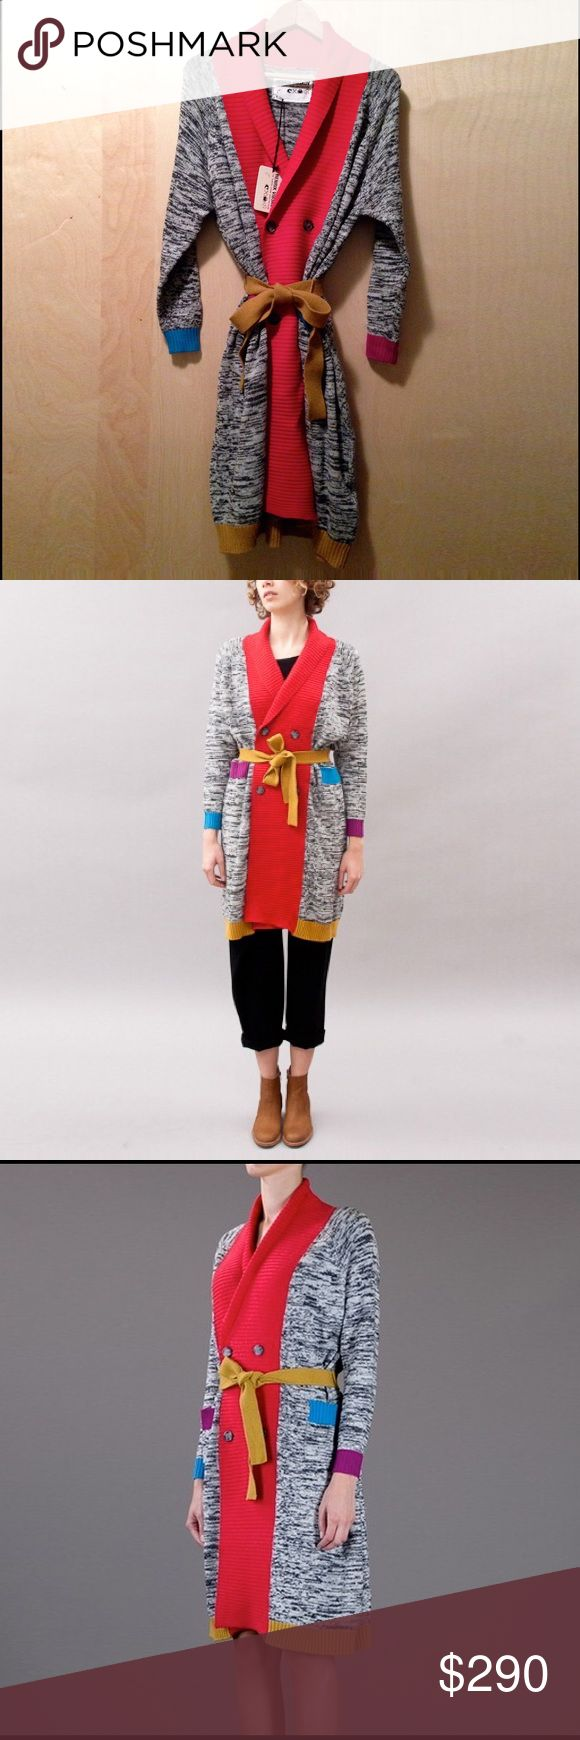 Henrik Vibskov Long Dong Big Cardigan- Multi Henrik Vibskov Long Dong Big Cardigan is multi-color and gallery worthy. Show your color and wear it out to the latest art openings. Henrik Vibskov Sweaters Cardigans